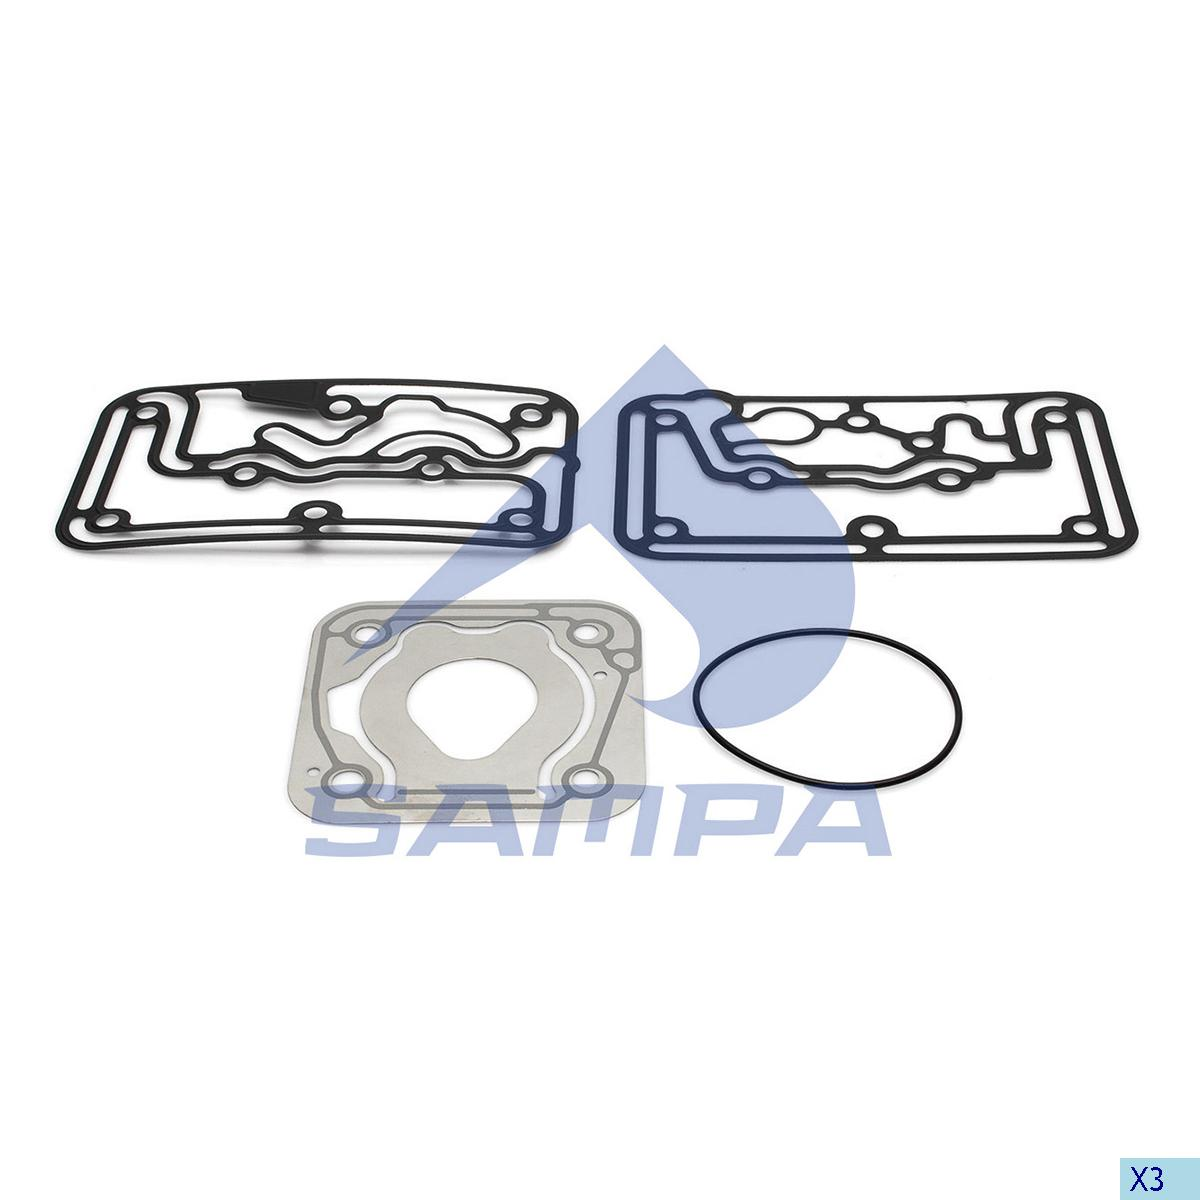 Gasket Kit, Compressor, Volvo, Compressed Air System